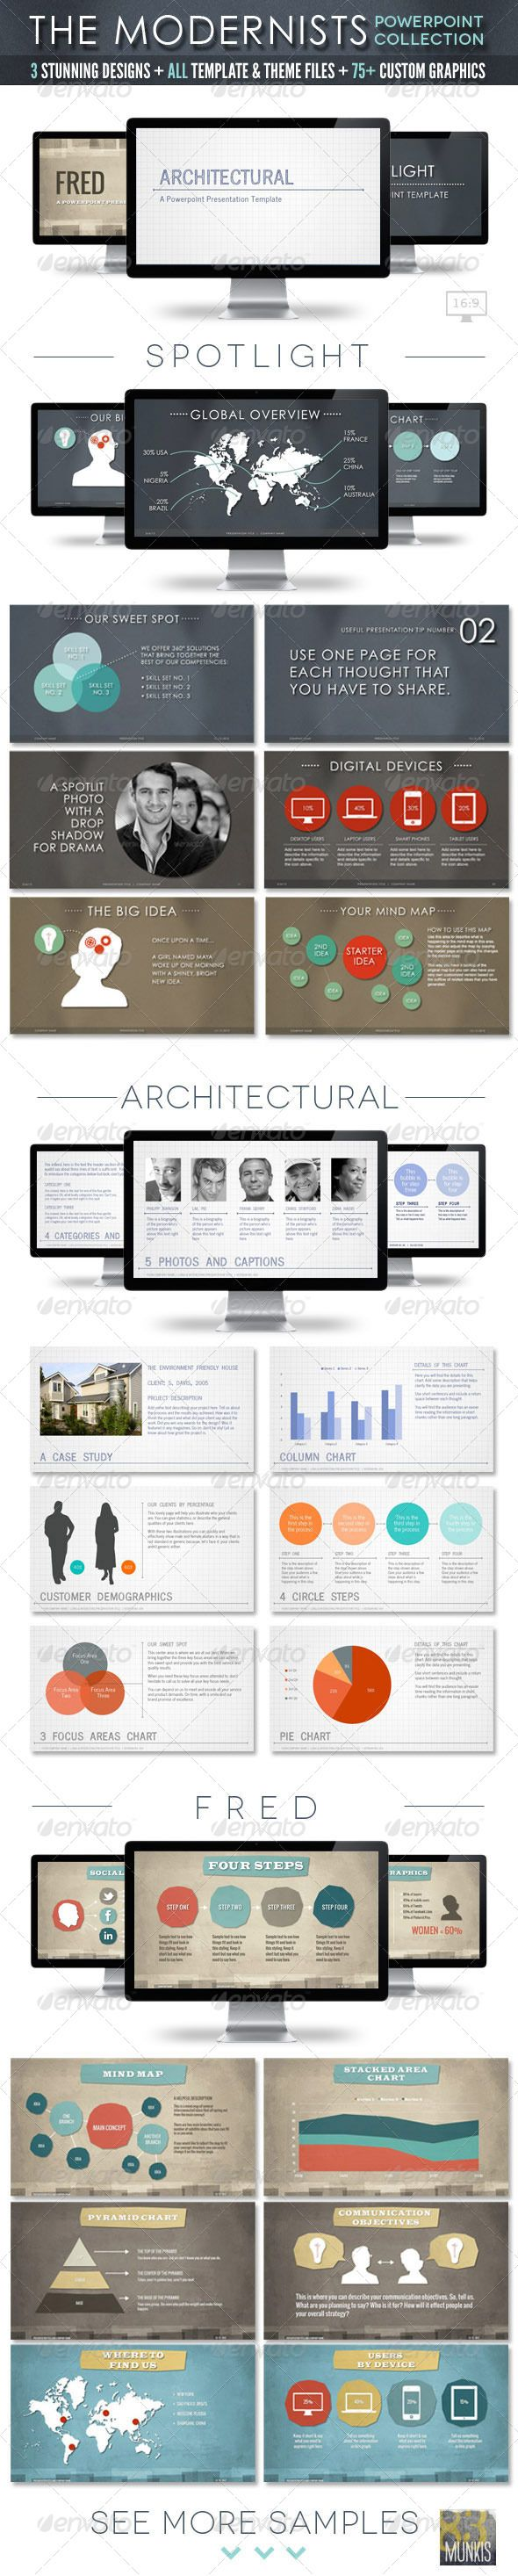 The modernists collection powerpoint templates creative the modernists collection powerpoint templates toneelgroepblik Images